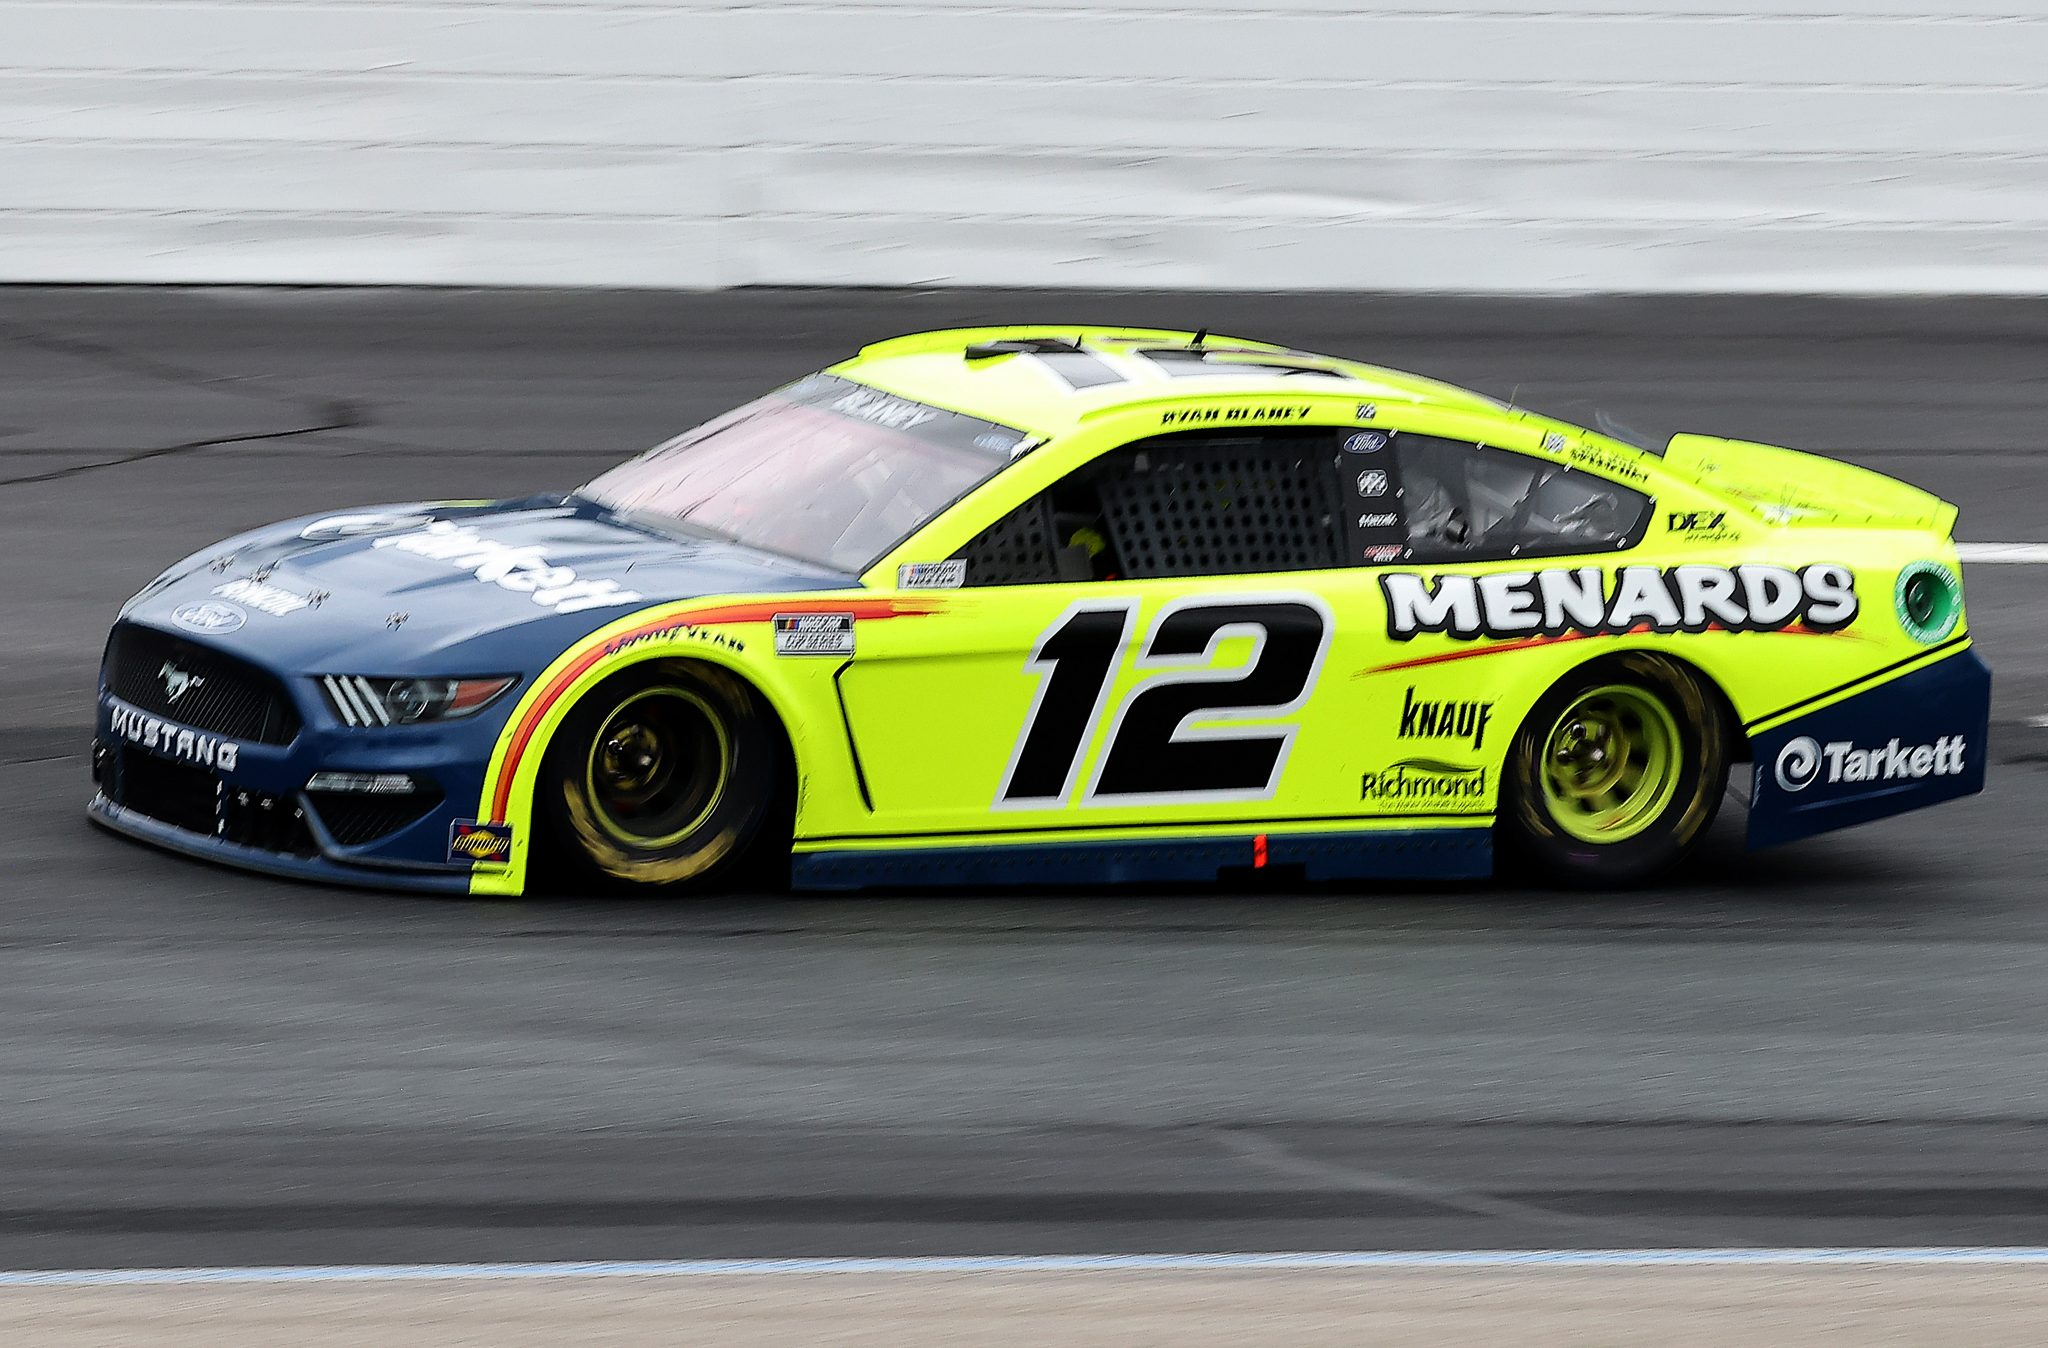 LOUDON, NEW HAMPSHIRE - JULY 18: Ryan Blaney, driver of the #12 Menards/Tarkett Ford, drives during the NASCAR Cup Series Foxwoods Resort Casino 301 at New Hampshire Motor Speedway on July 18, 2021 in Loudon, New Hampshire. (Photo by James Gilbert/Getty Images)   Getty Images